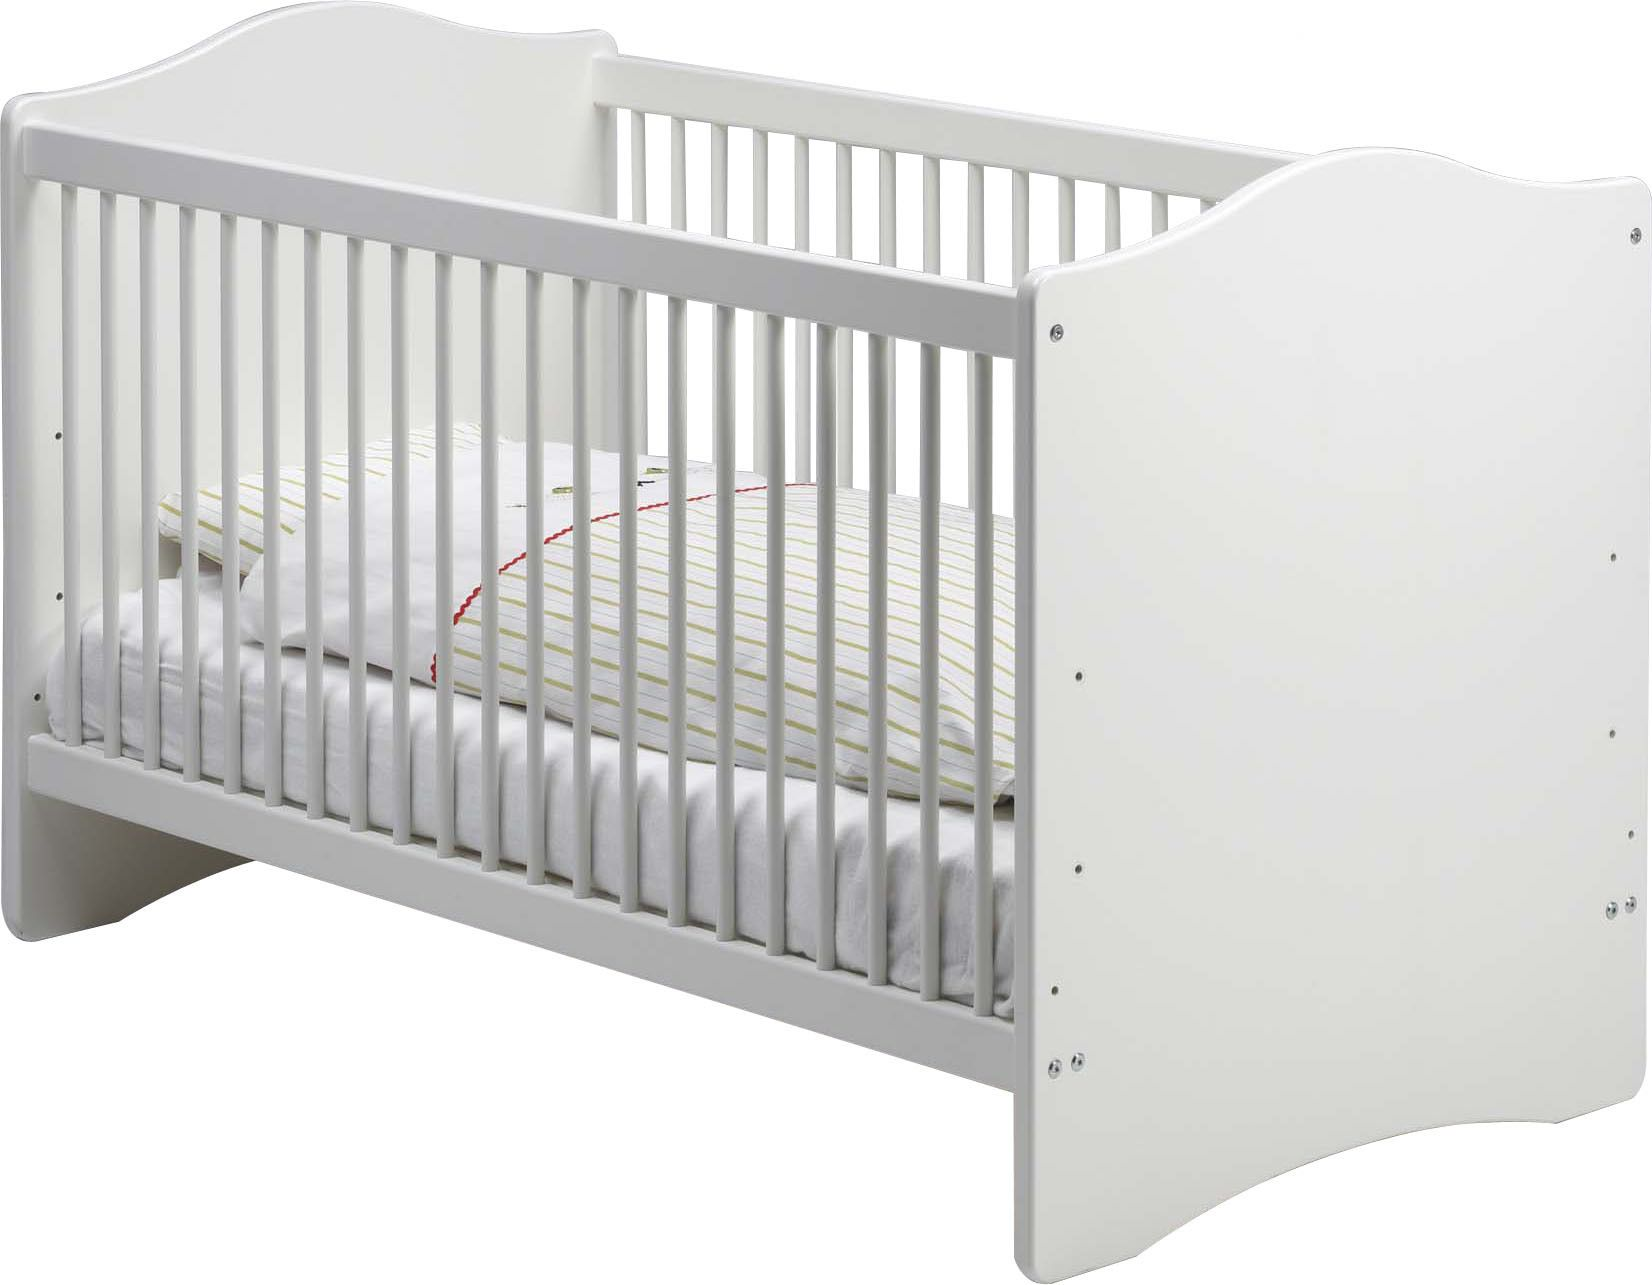 Mikhail Cot Kids Single Beds Kids Cot Kids Bedroom Furniture